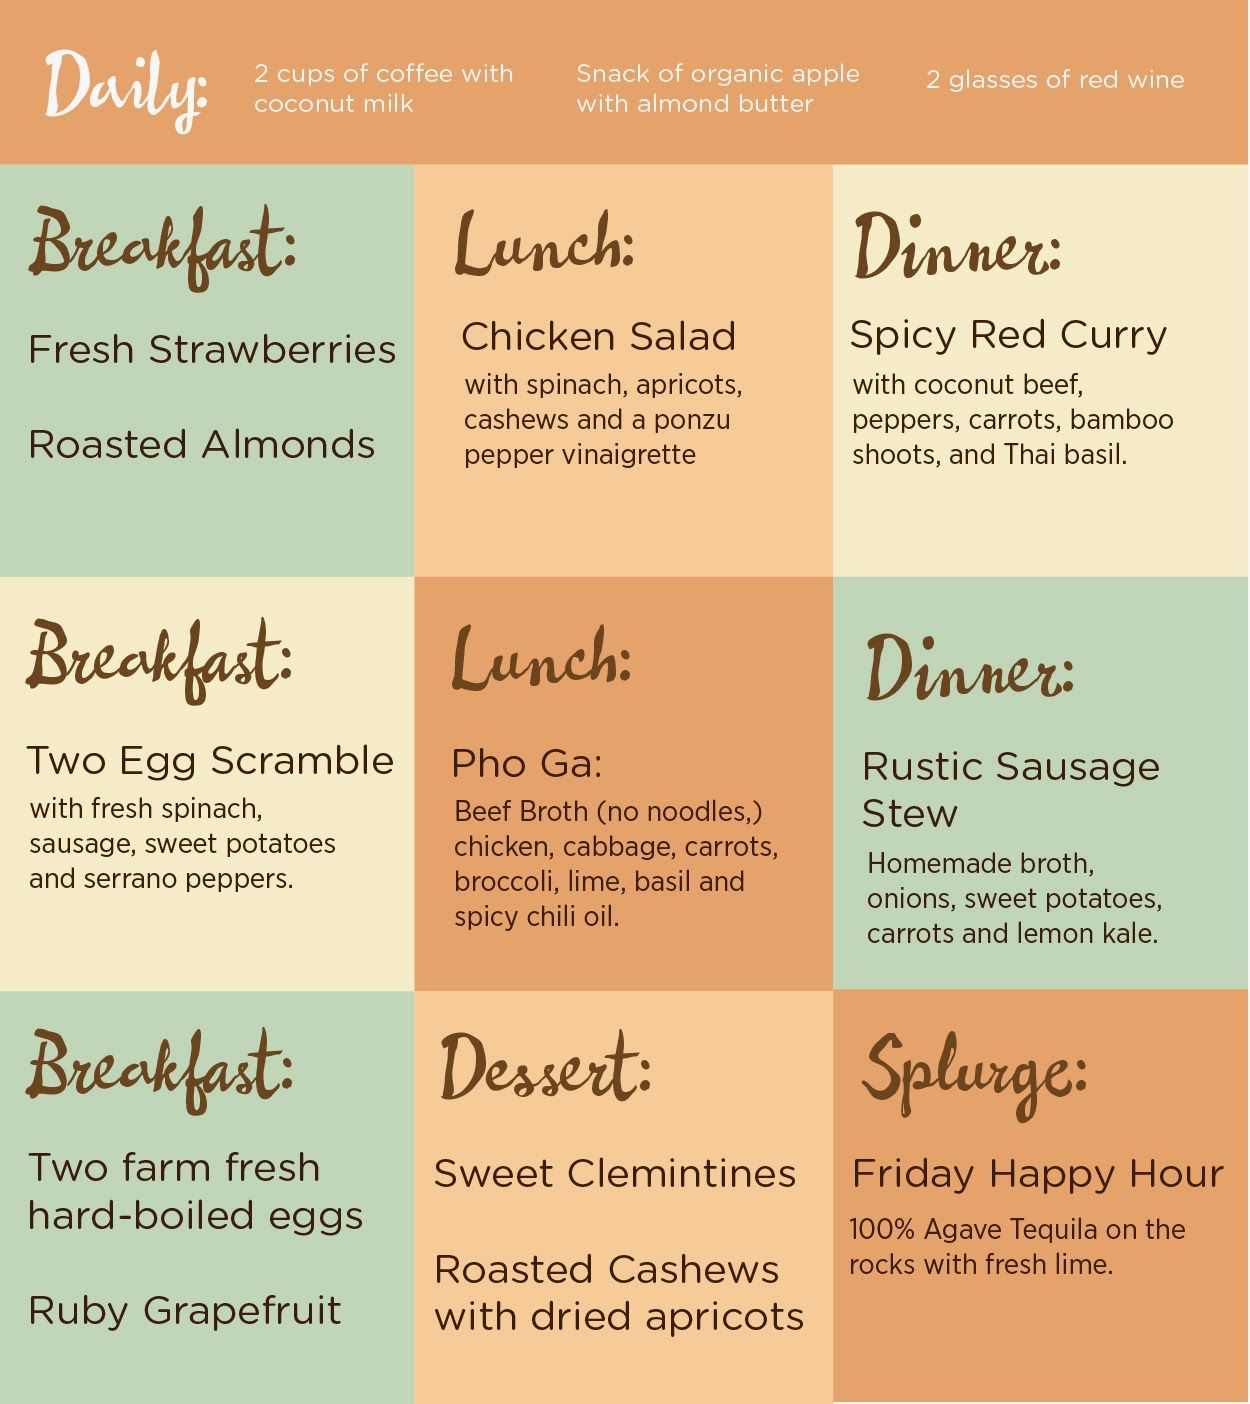 30 day meal plan for weight loss free | salegoods | Pinterest ...